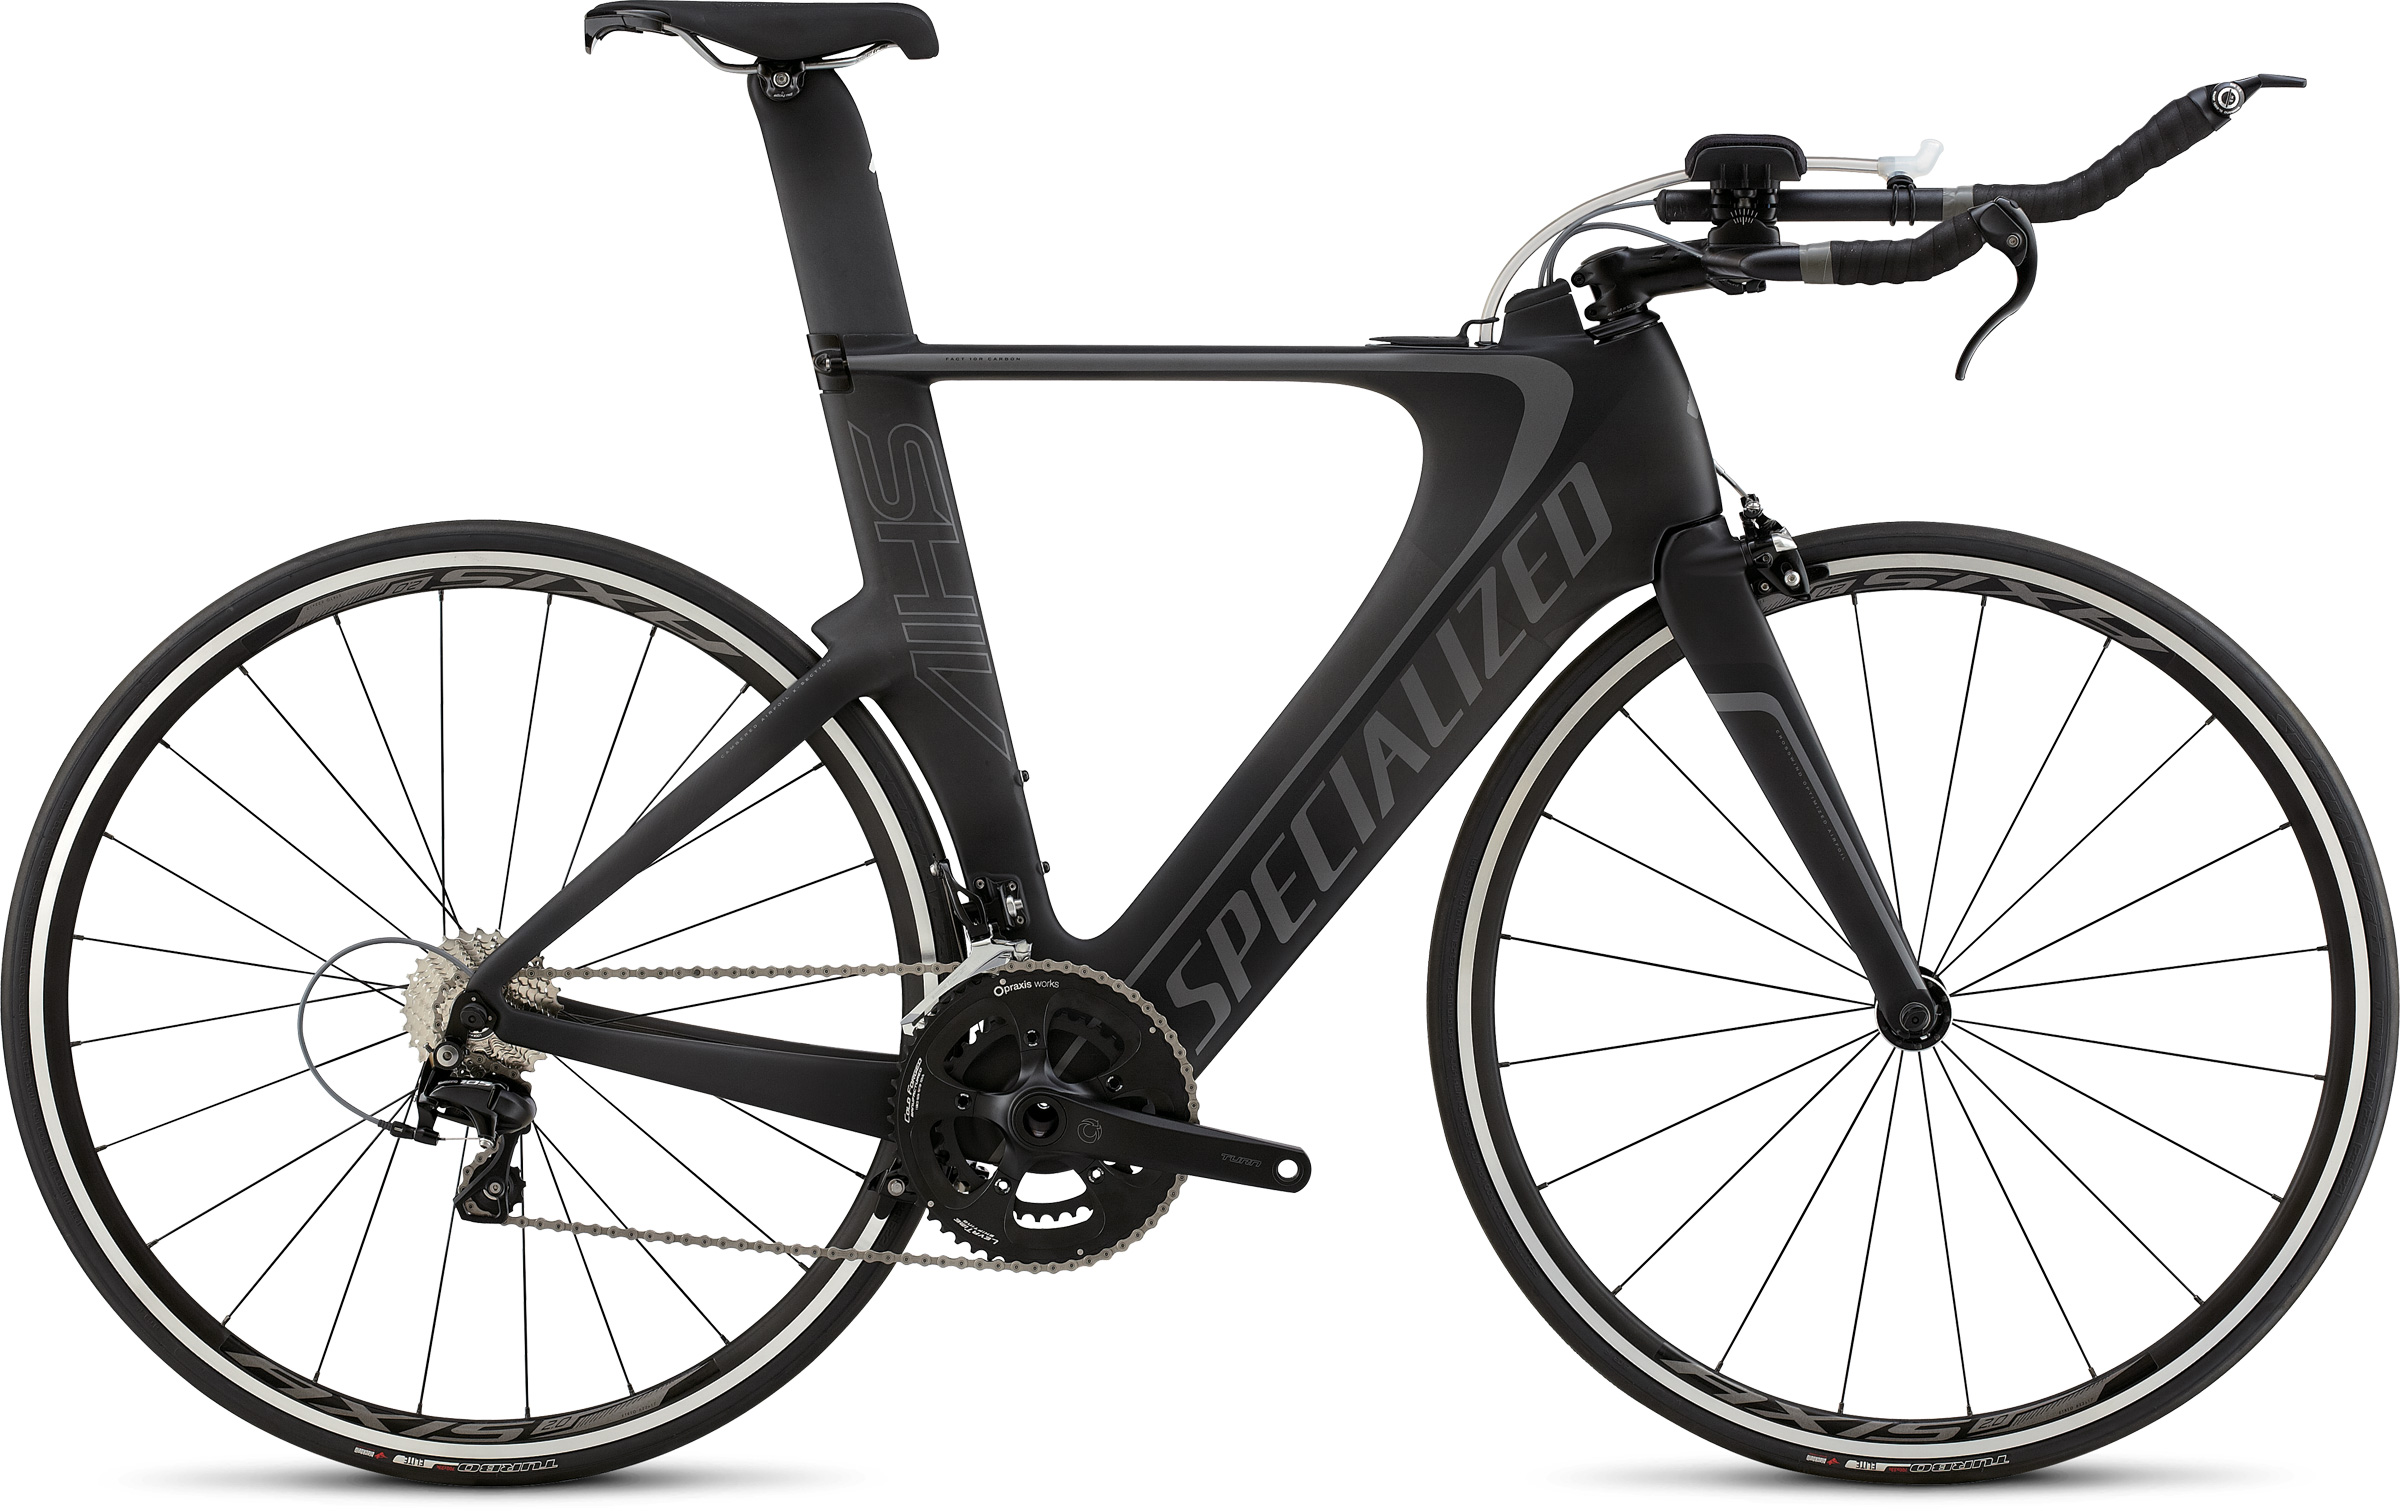 reputable site f80ab 05ec1 Specialized Shiv Elite - Cyclelife Pickering, Ontario Canada ...